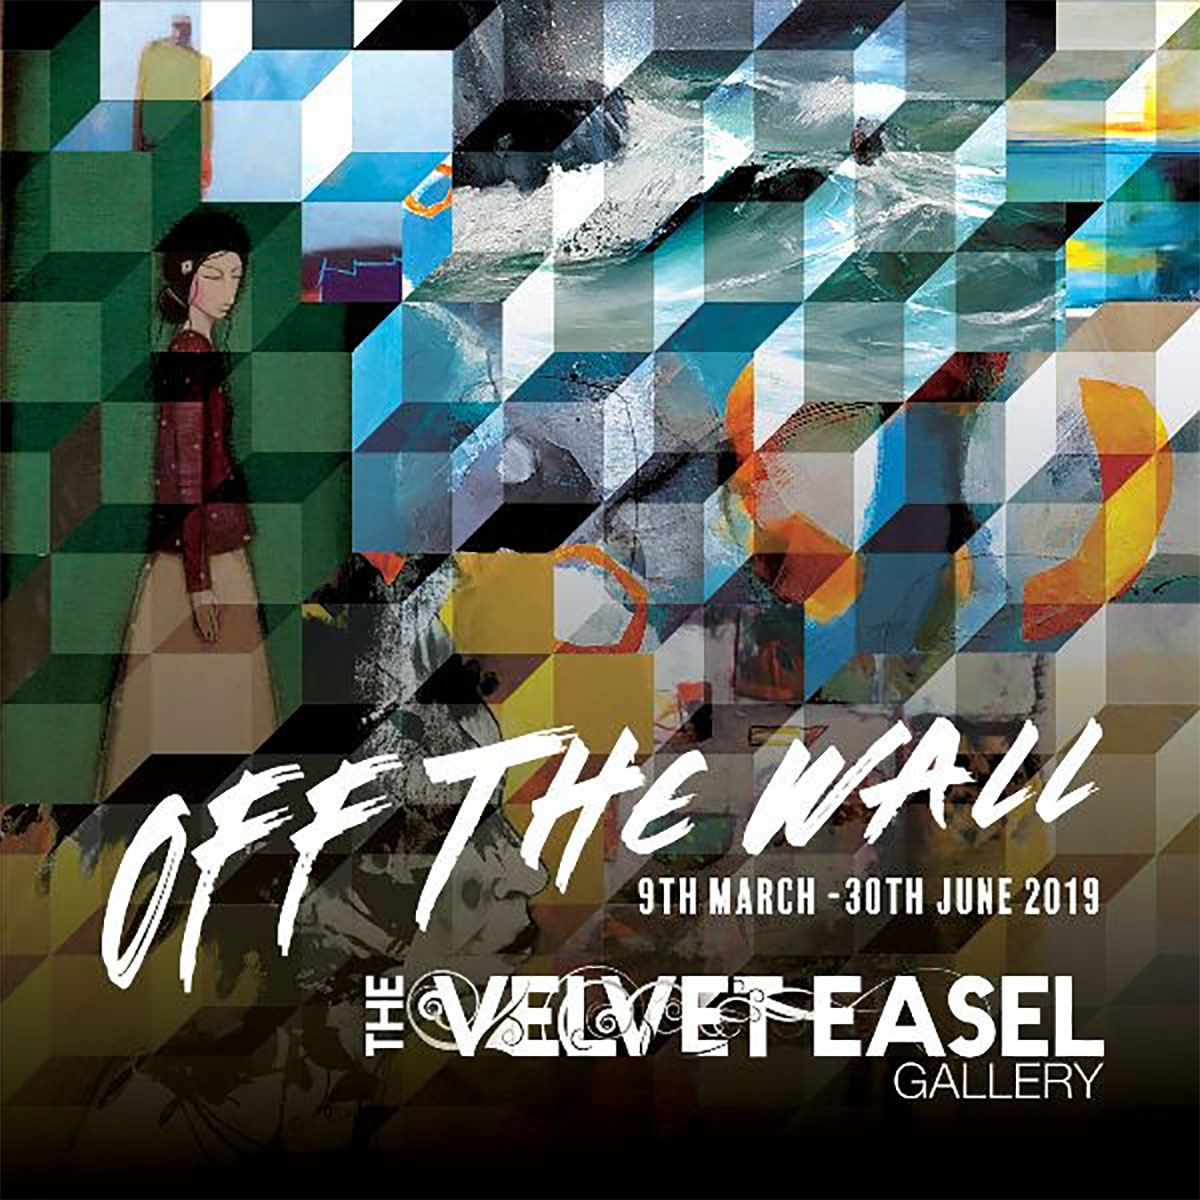 The Velvet Easel Gallery: Off the Wall